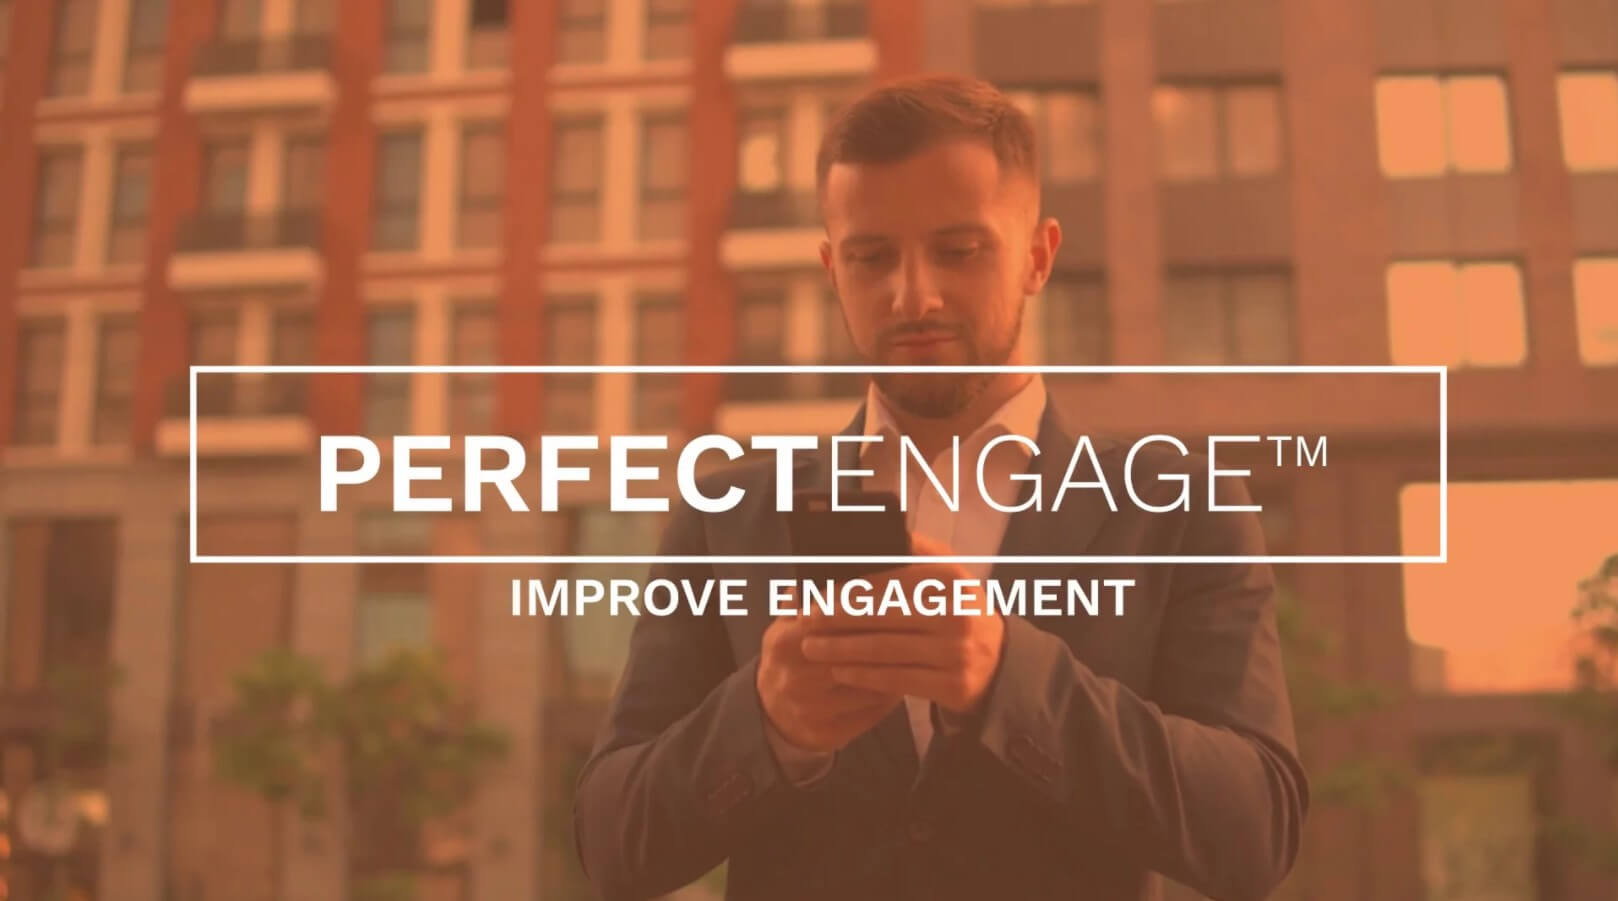 PerfectEngage Video Thumbnail